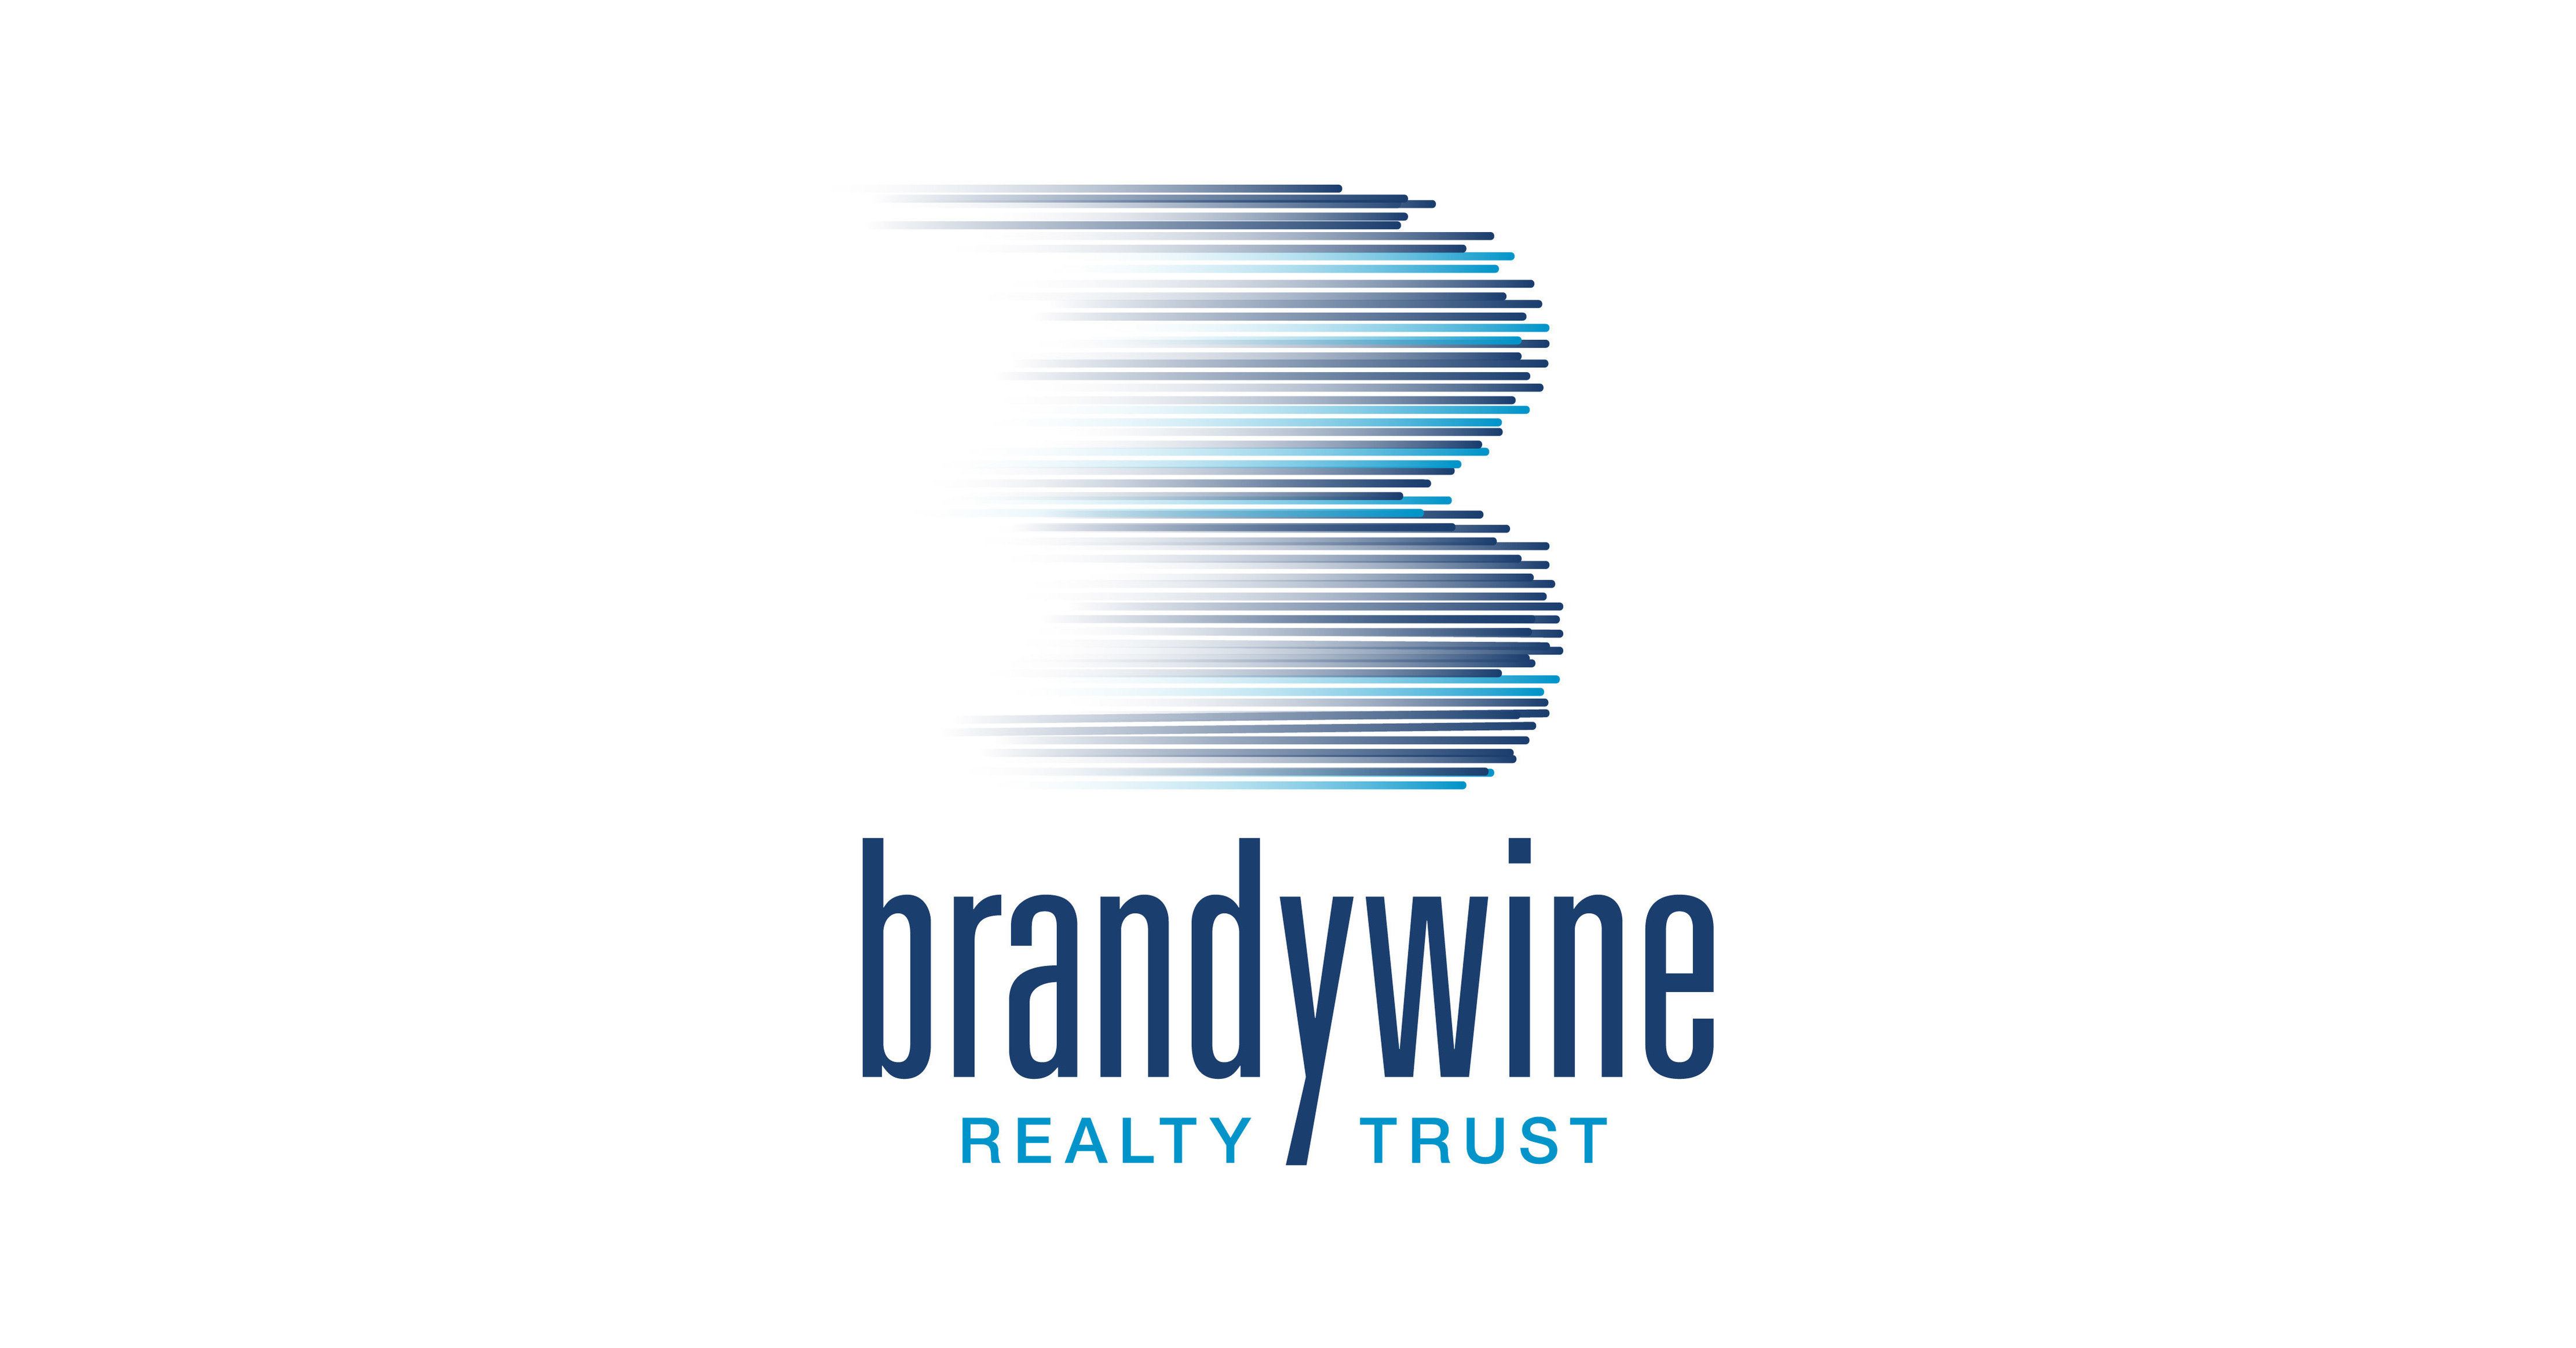 Brandywine Realty Trust Announces First Quarter 2017